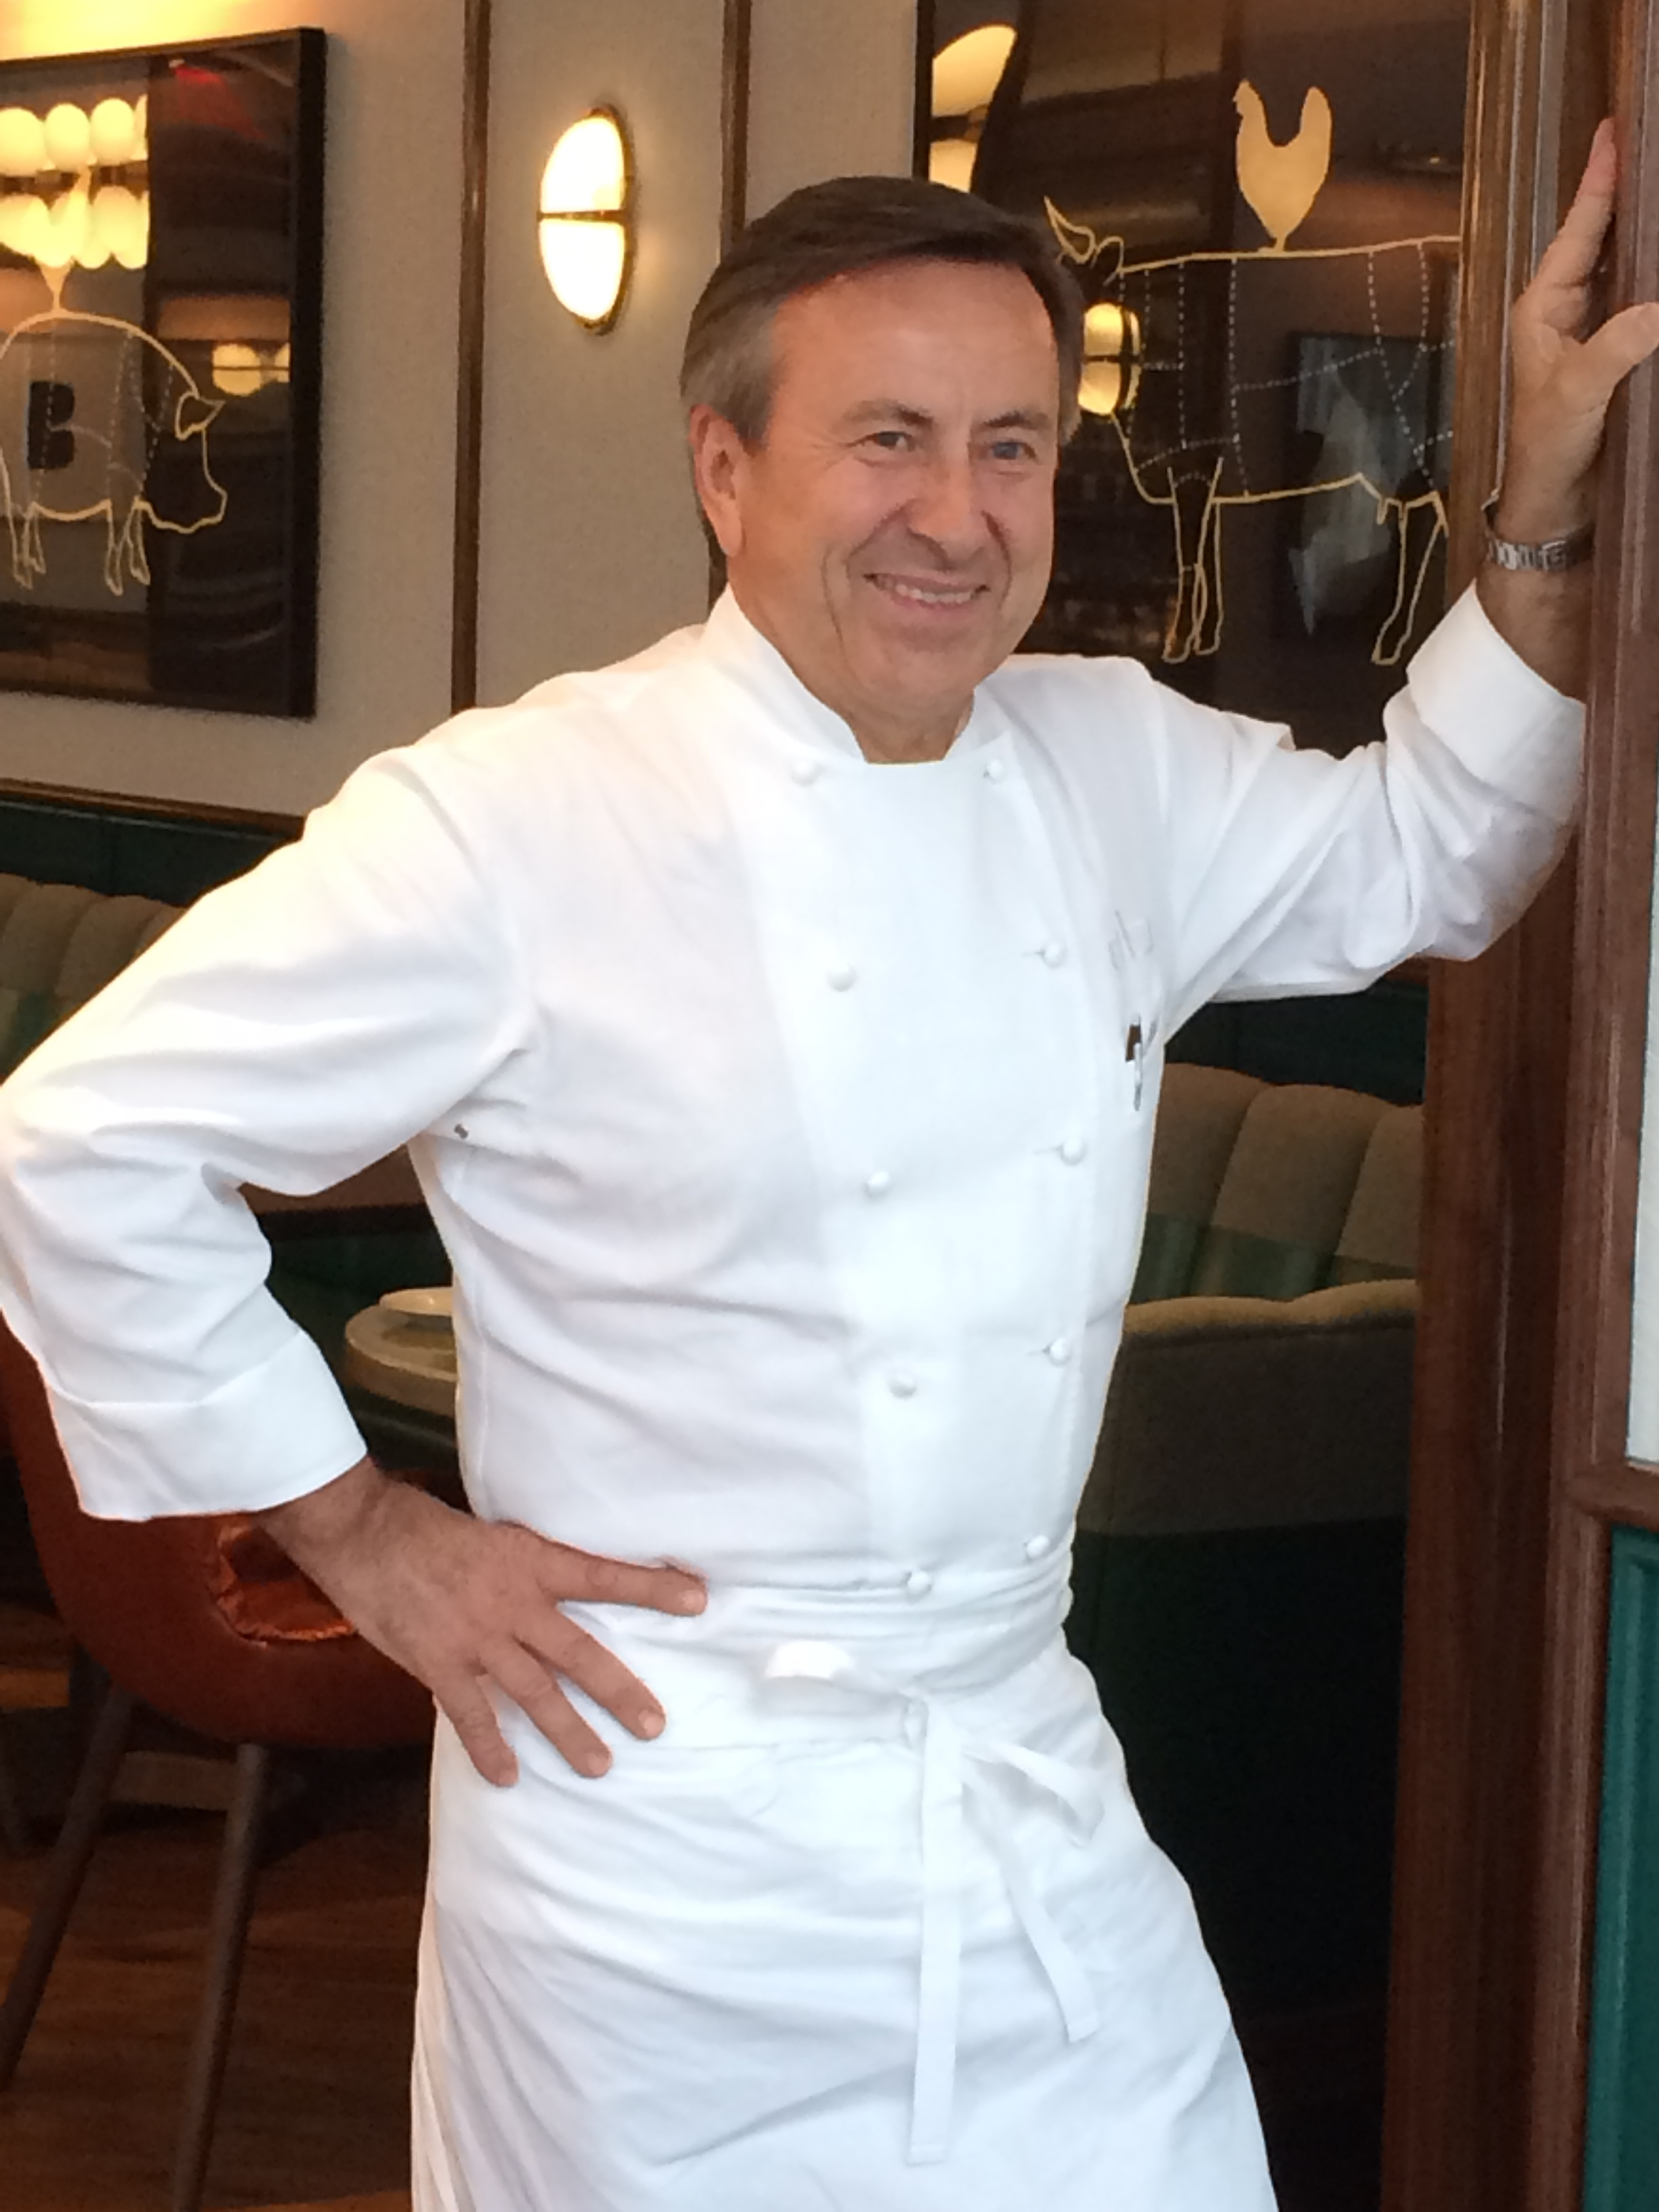 Chef Daniel Boulud, photographed by Stephanie Dickison © 2016.